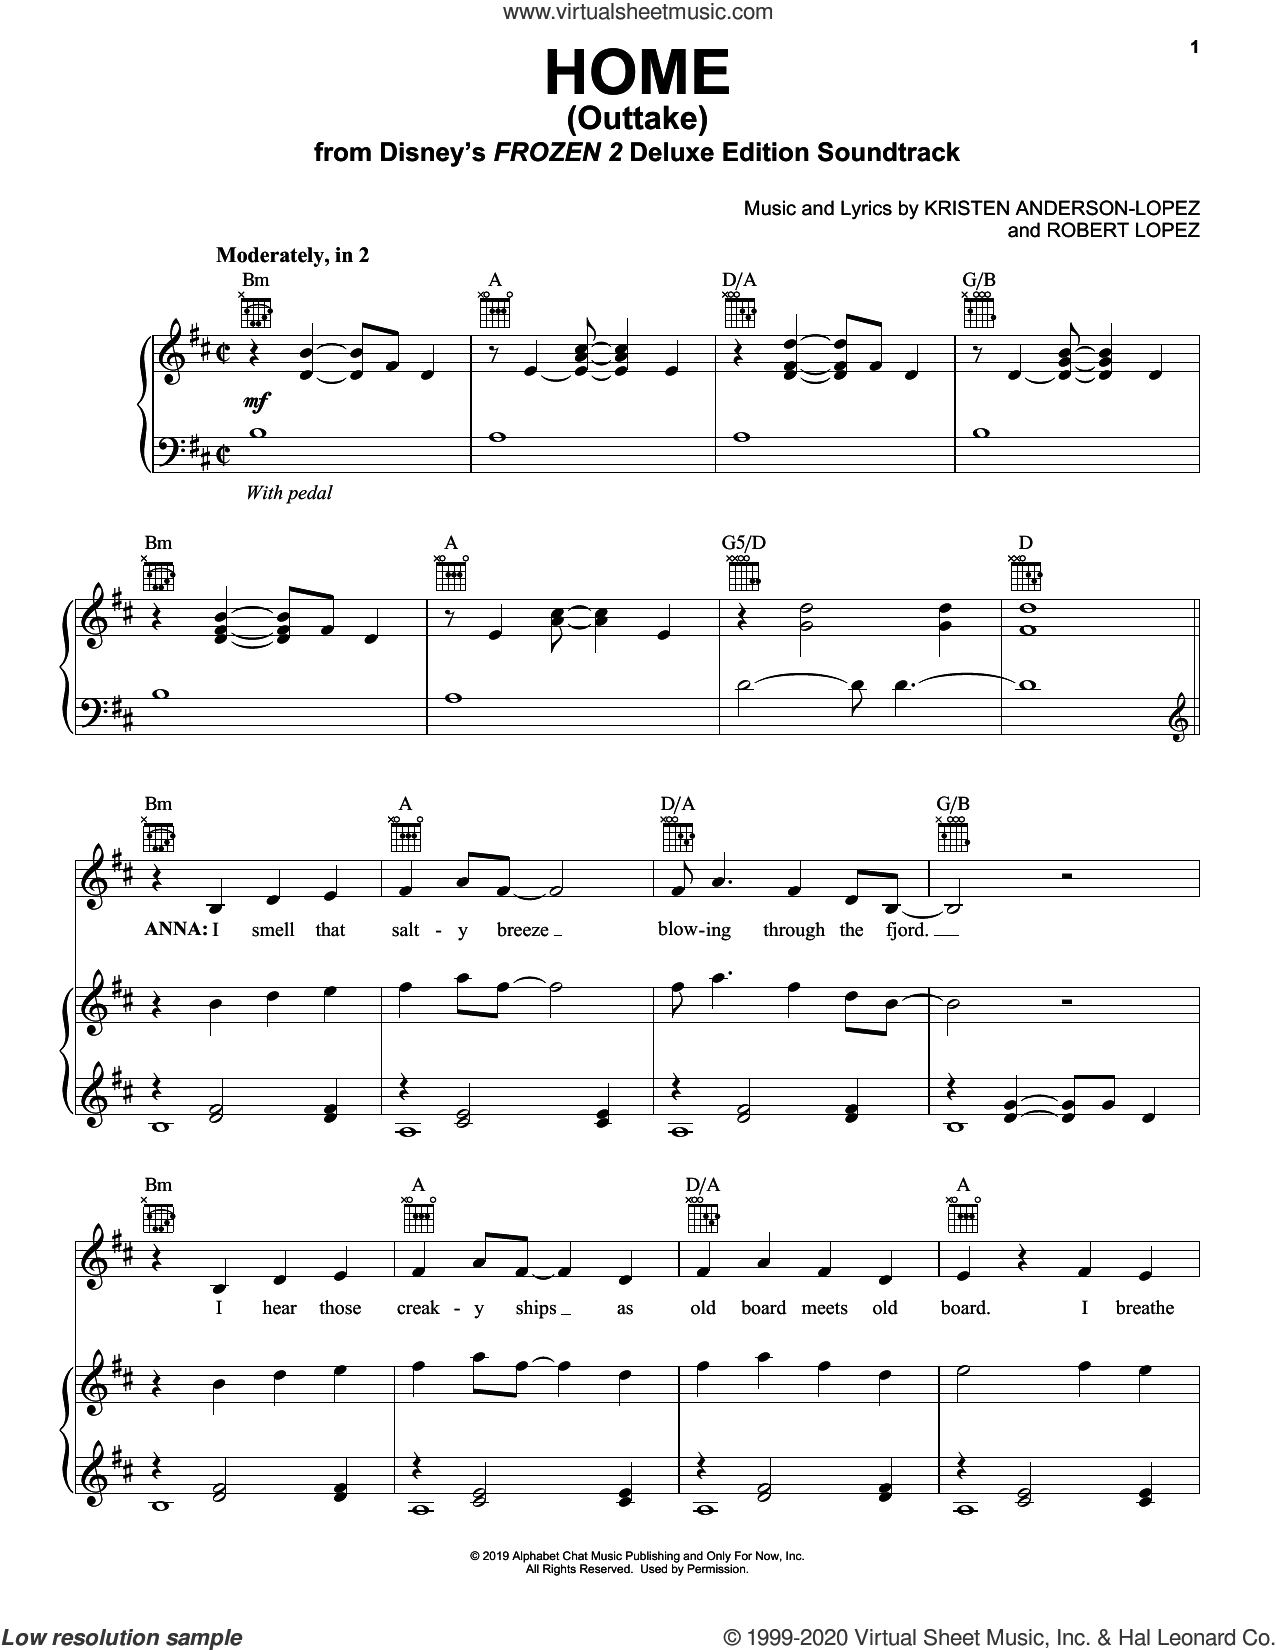 Home - Outtake (from Disney's Frozen 2) sheet music for voice, piano or guitar by Kristen Bell, Kristen Anderson-Lopez and Robert Lopez, intermediate skill level